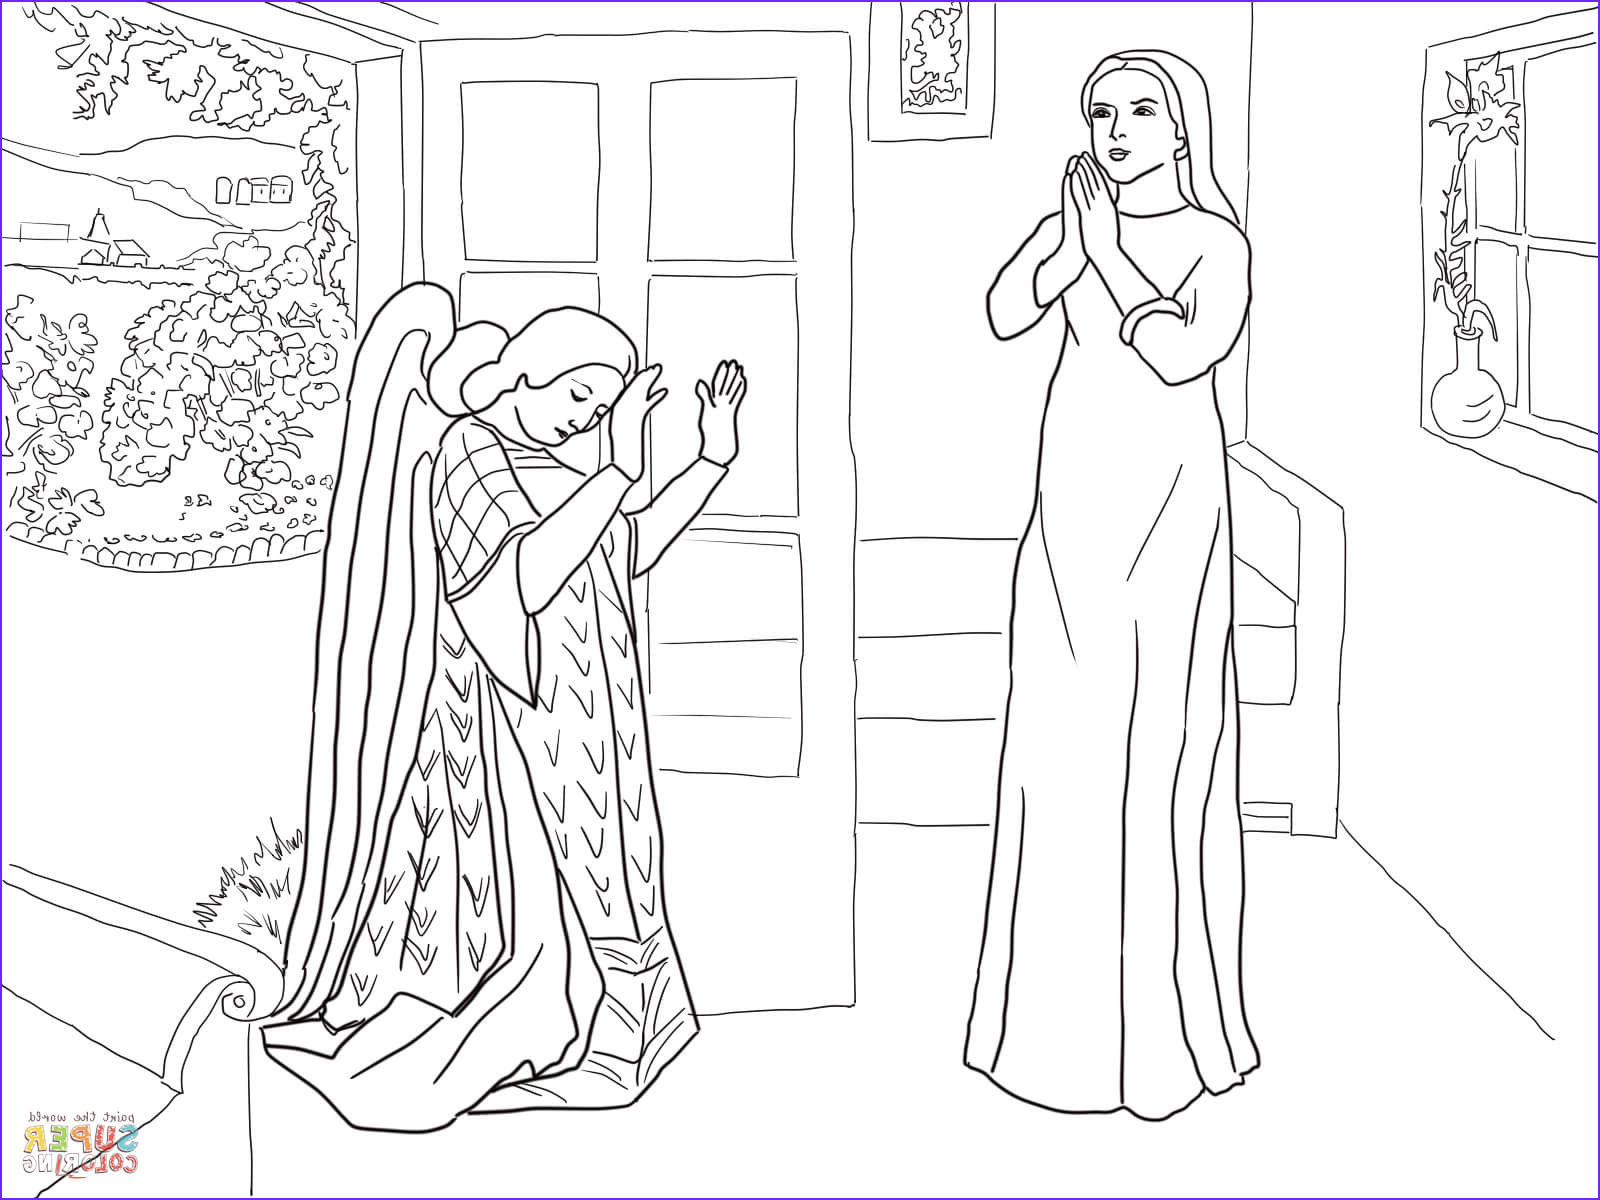 denis daily coloring pages sketch templates